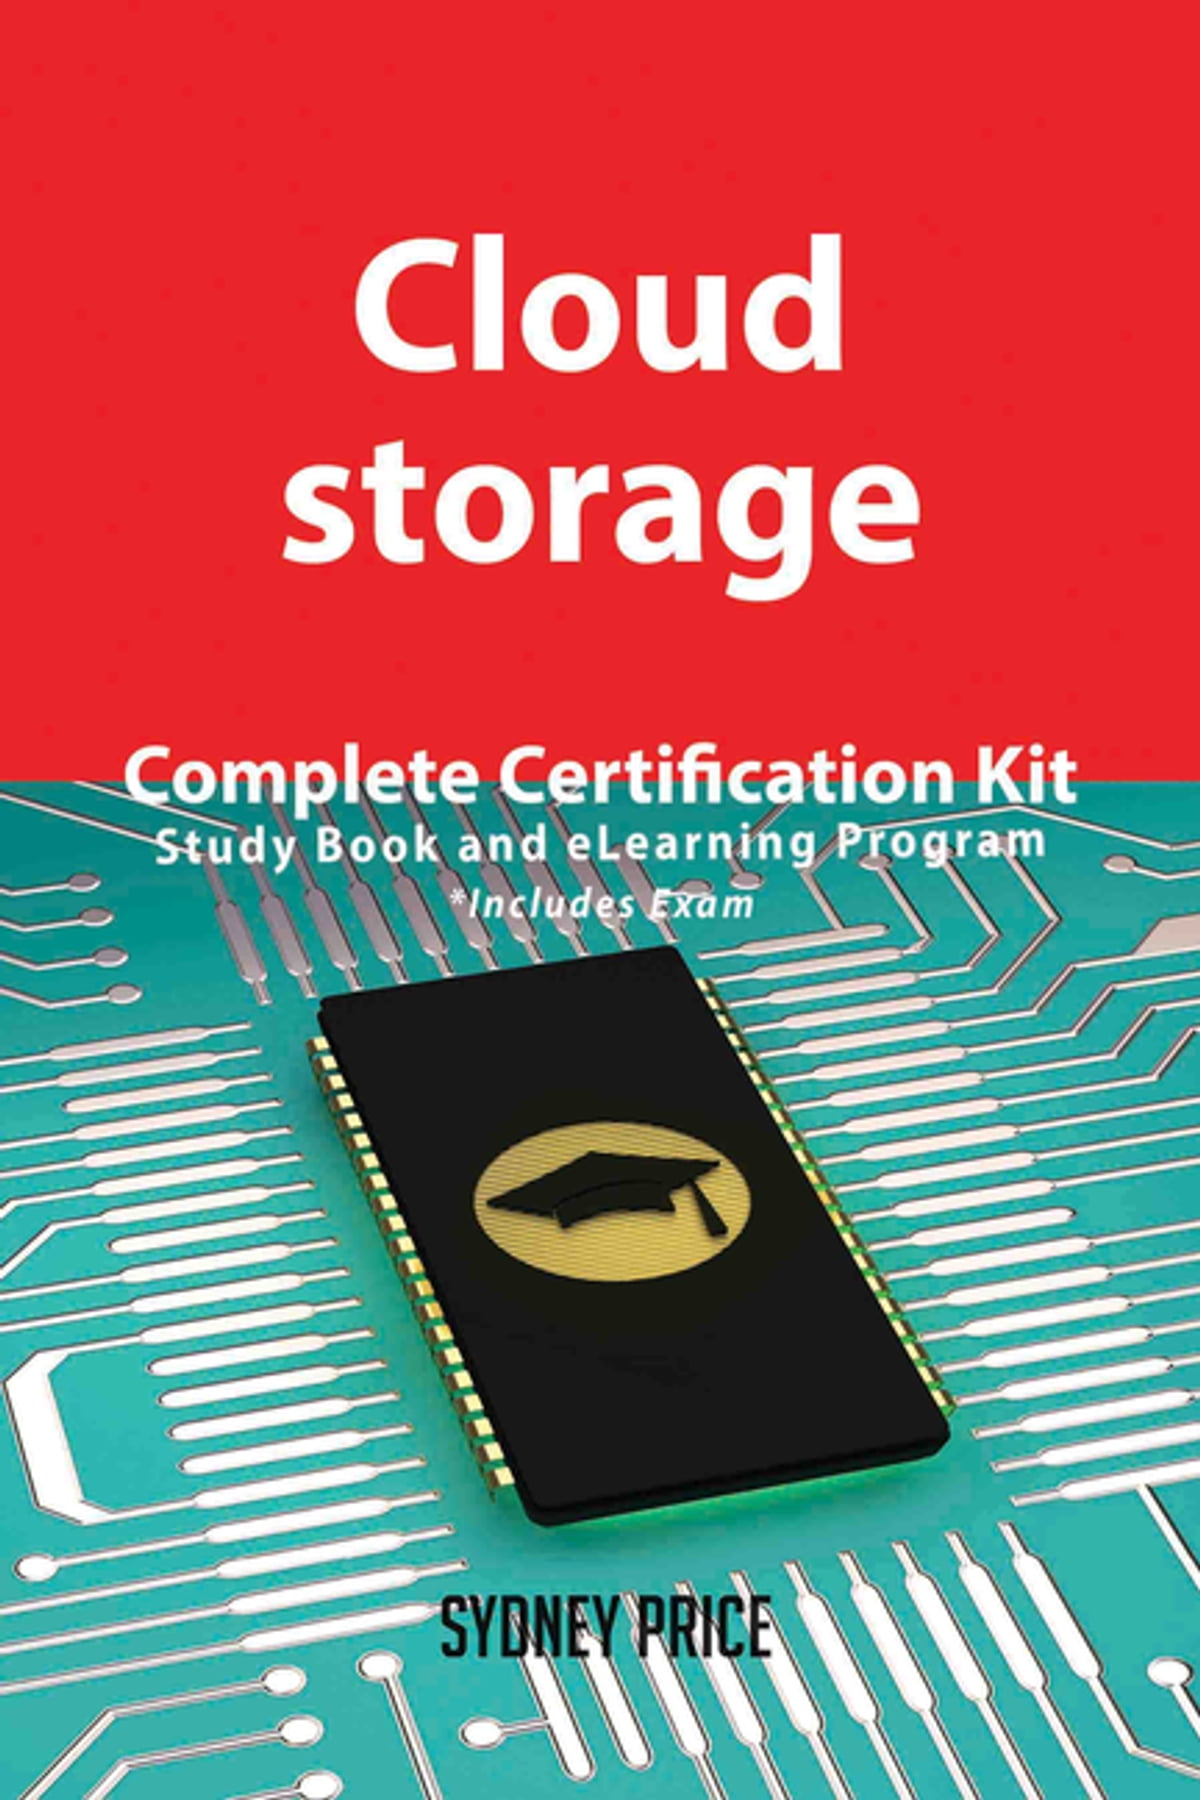 Cloud Storage Complete Certification Kit Study Book And Elearning